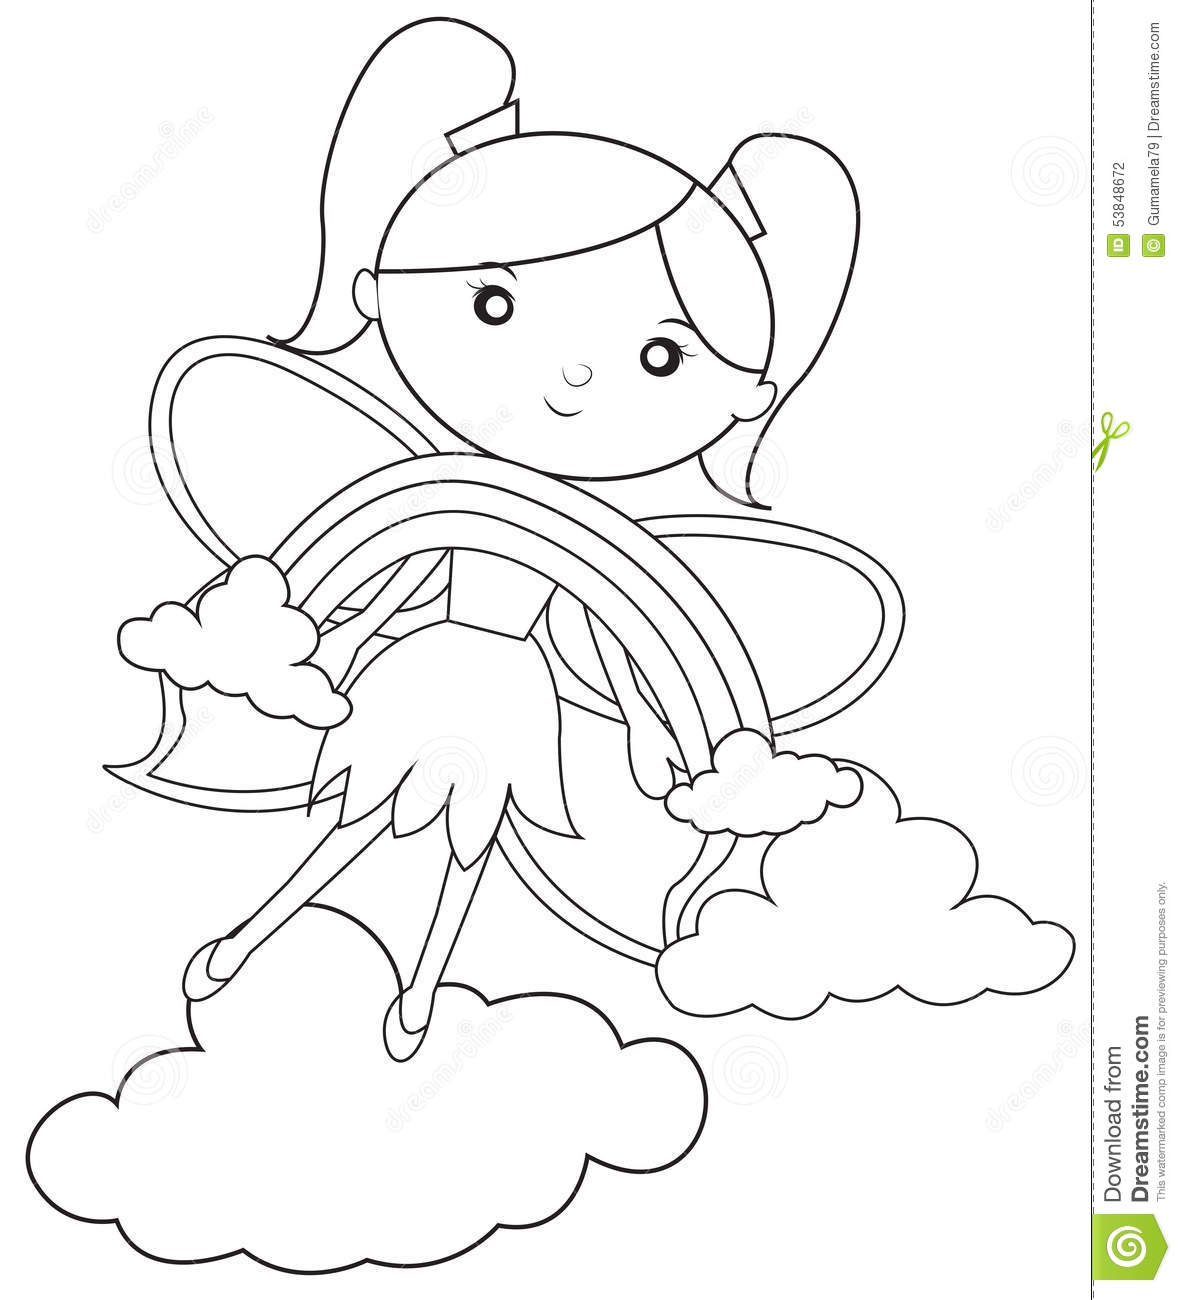 Rainbow fairies coloring pages images for Rainbow magic fairy coloring pages